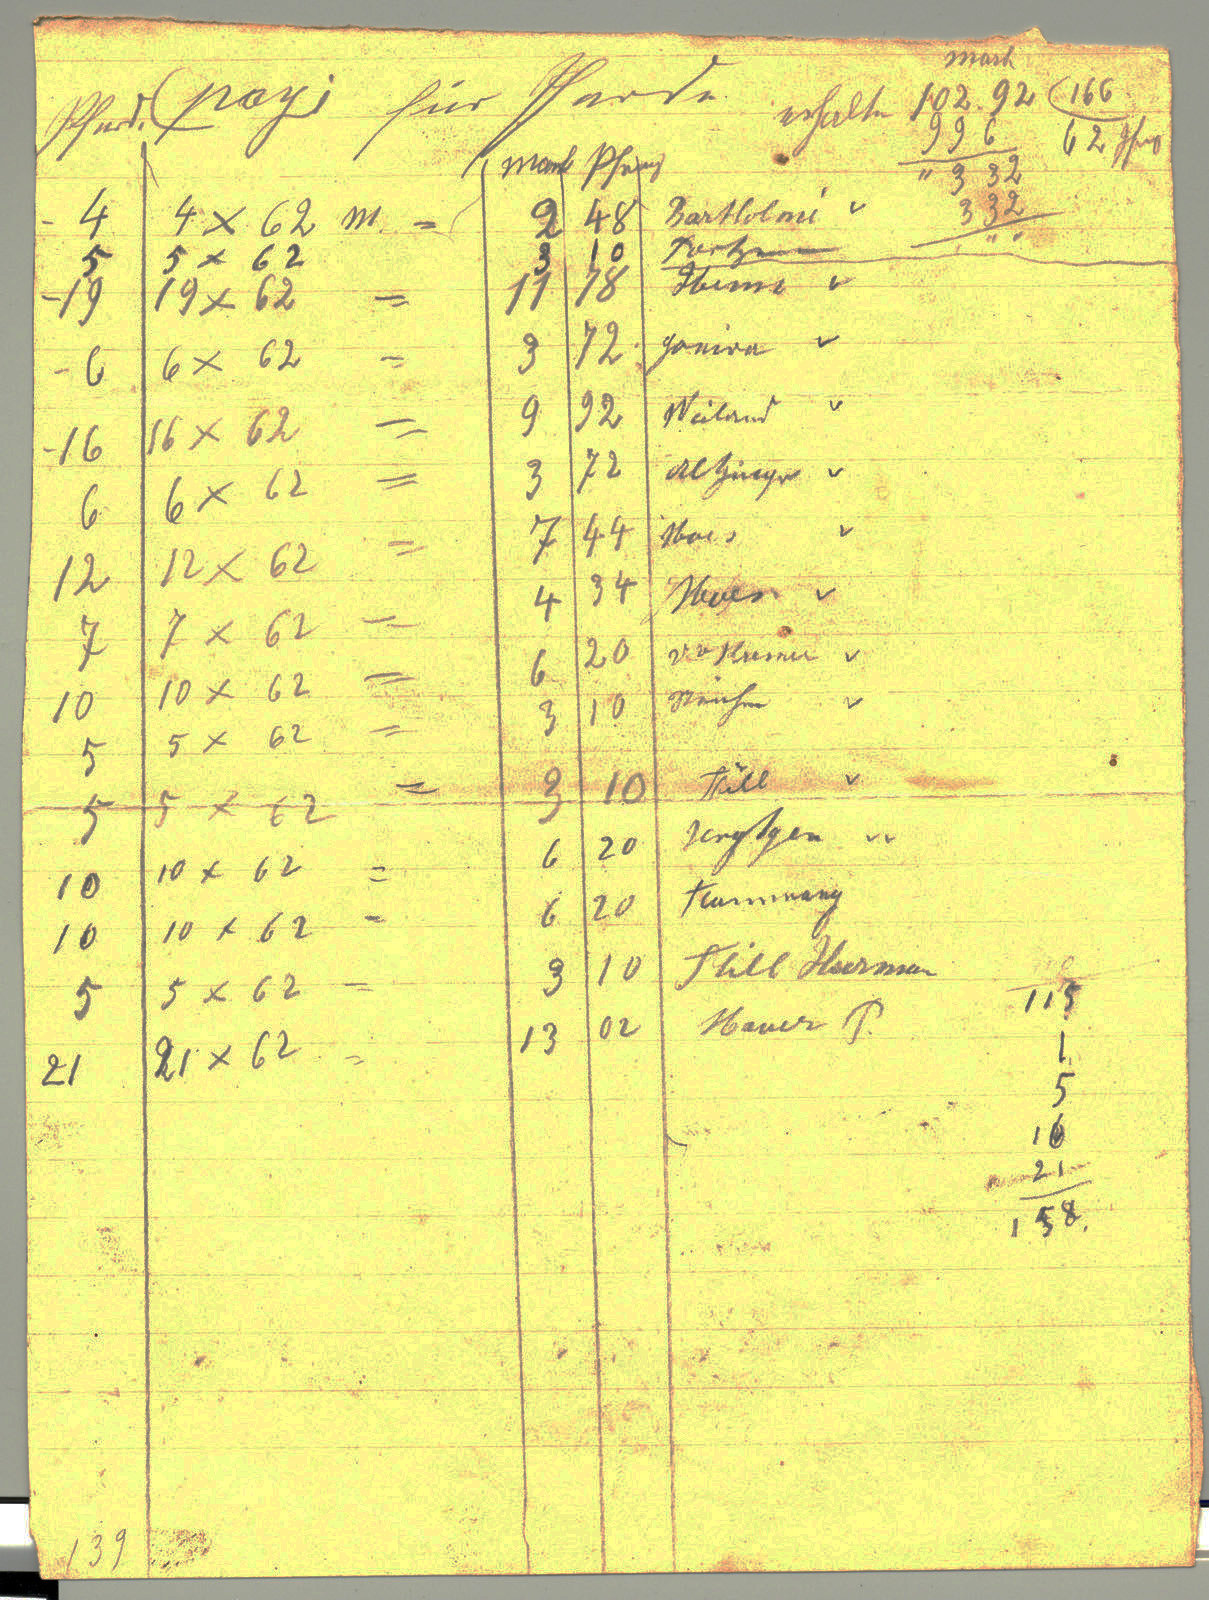 Calculation note for horse feeding fees, August 24th, 1914, Europeana 1914- 1918 / Collection Thillenvogtei, CC BY-SA